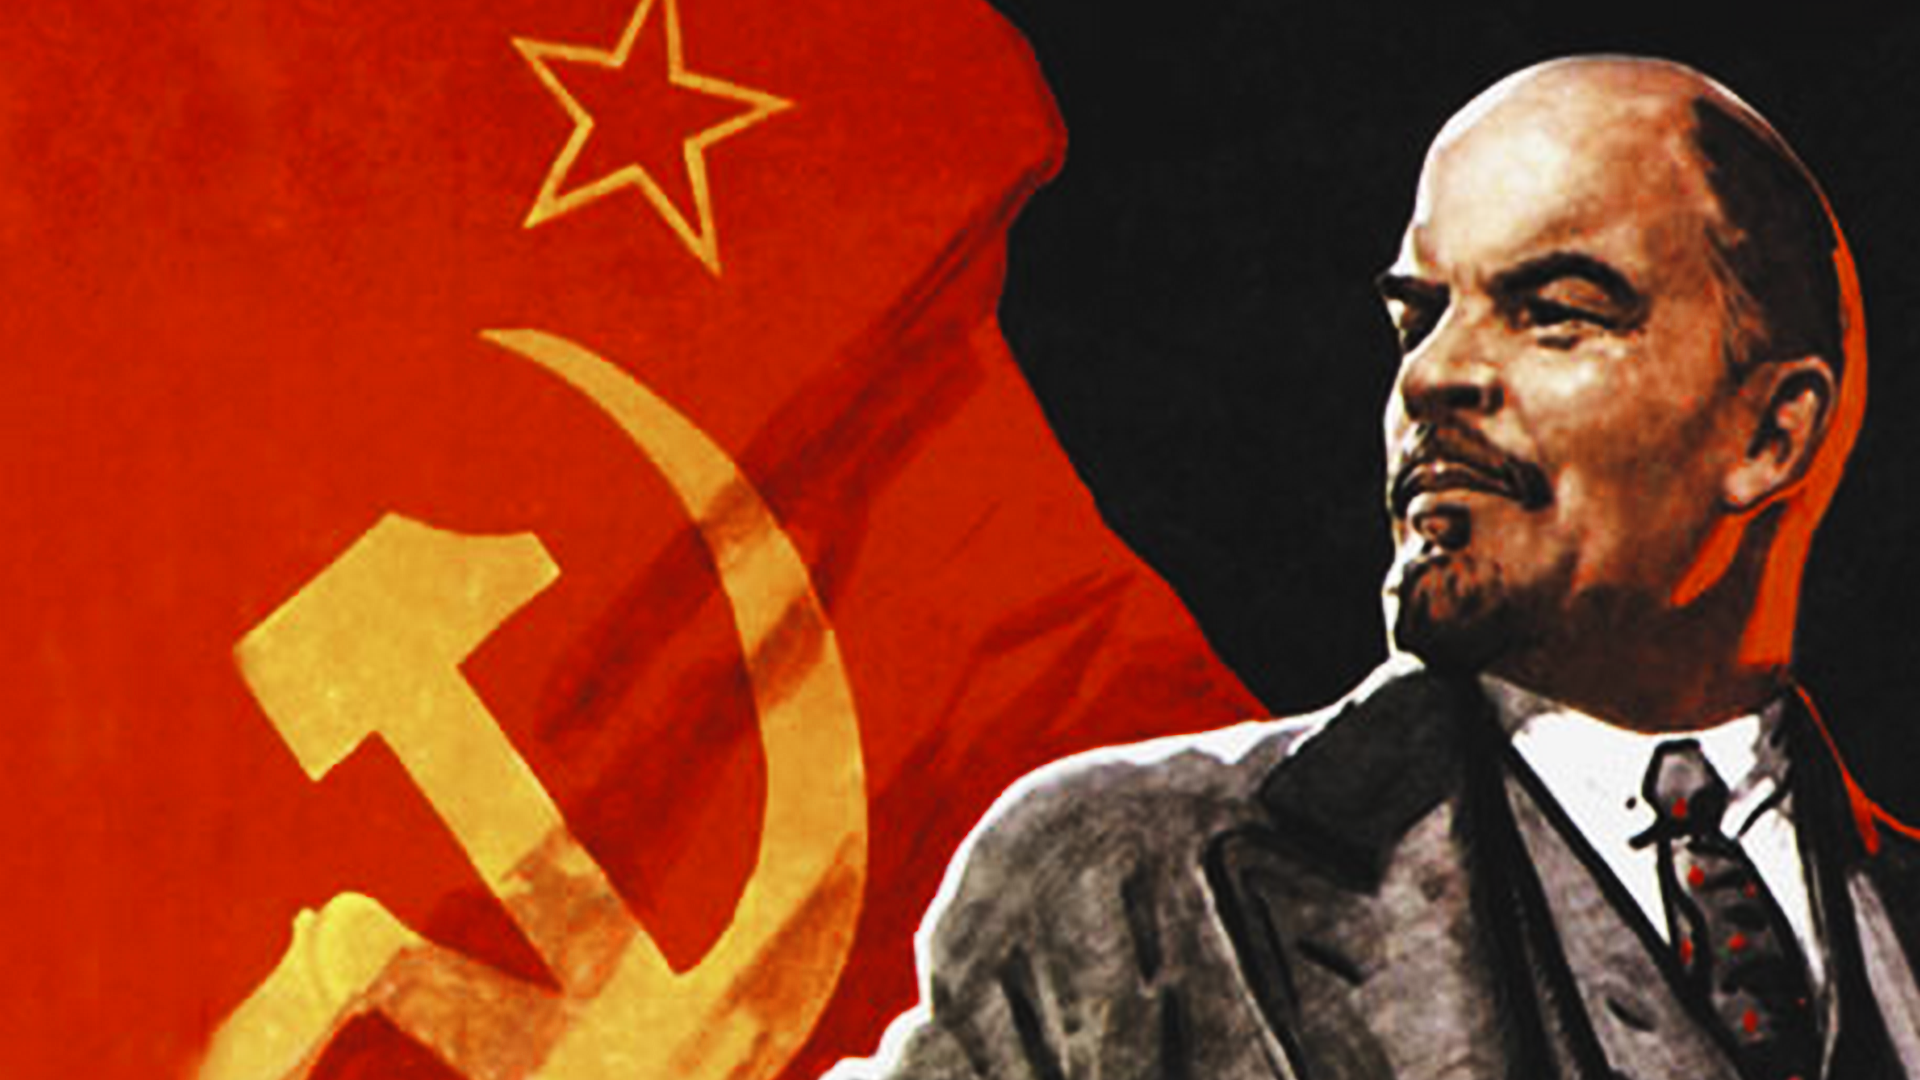 joseph stalin and communist ussr Lenin vs stalin  lenin and stalin happen to be the most prominent and influential leaders of modern soviet union while stalin ruled for almost three decades and was the successor of lenin, it was lenin who remains the father figure and a creator of modern day communist ussr (which ended in 1990 though.